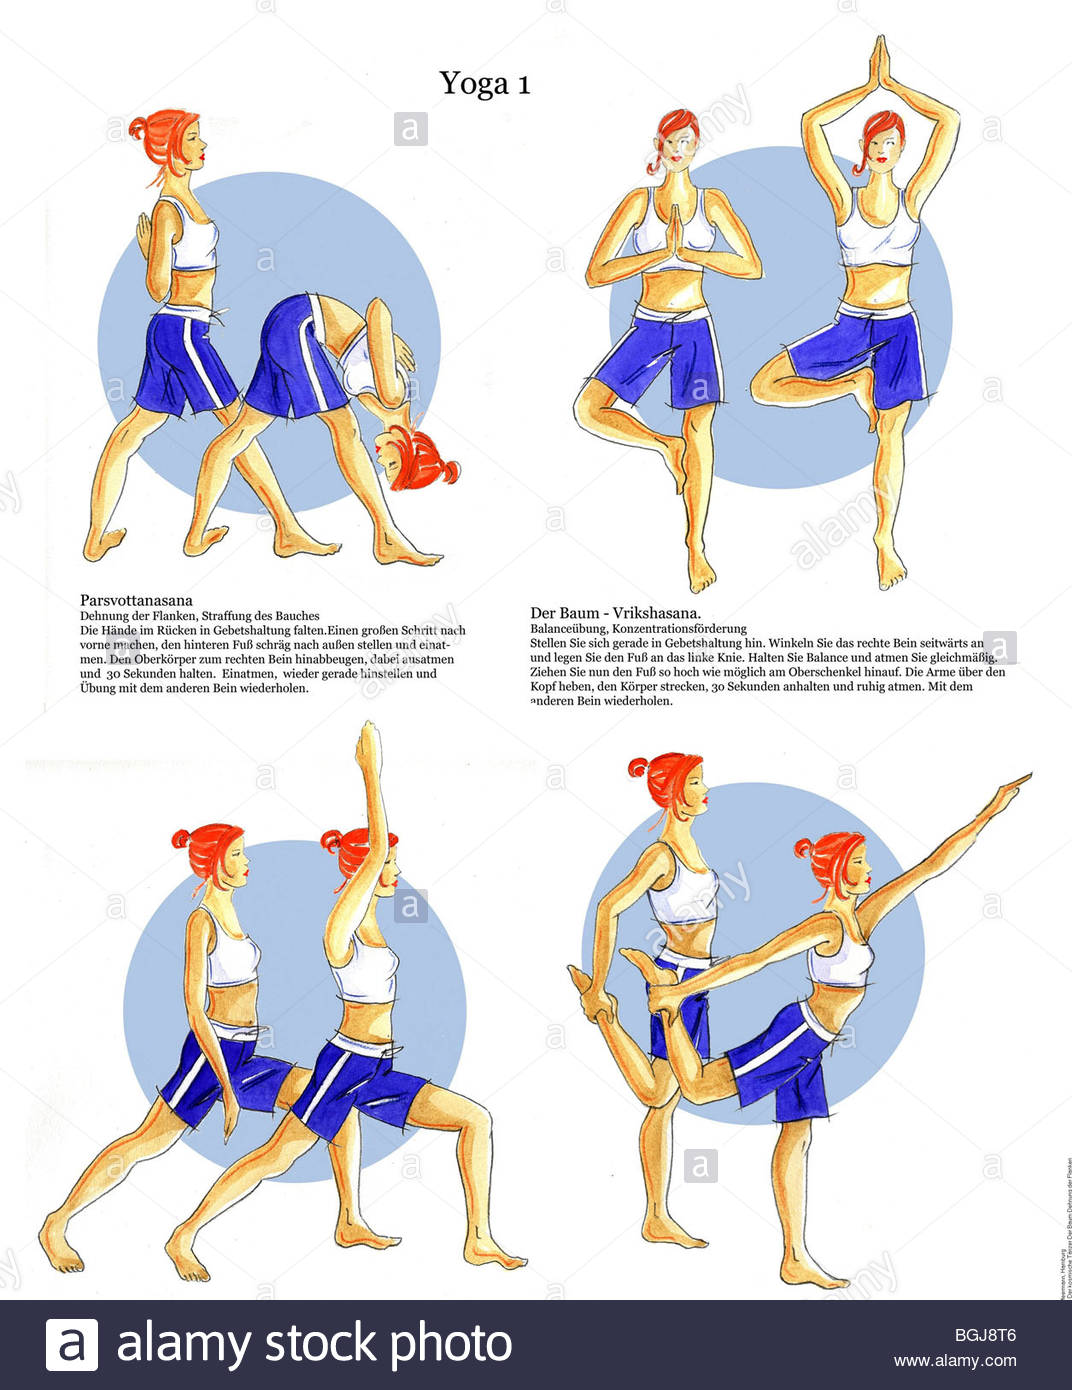 Yoga Positions Of The Warriors The Cosmic Dancer.